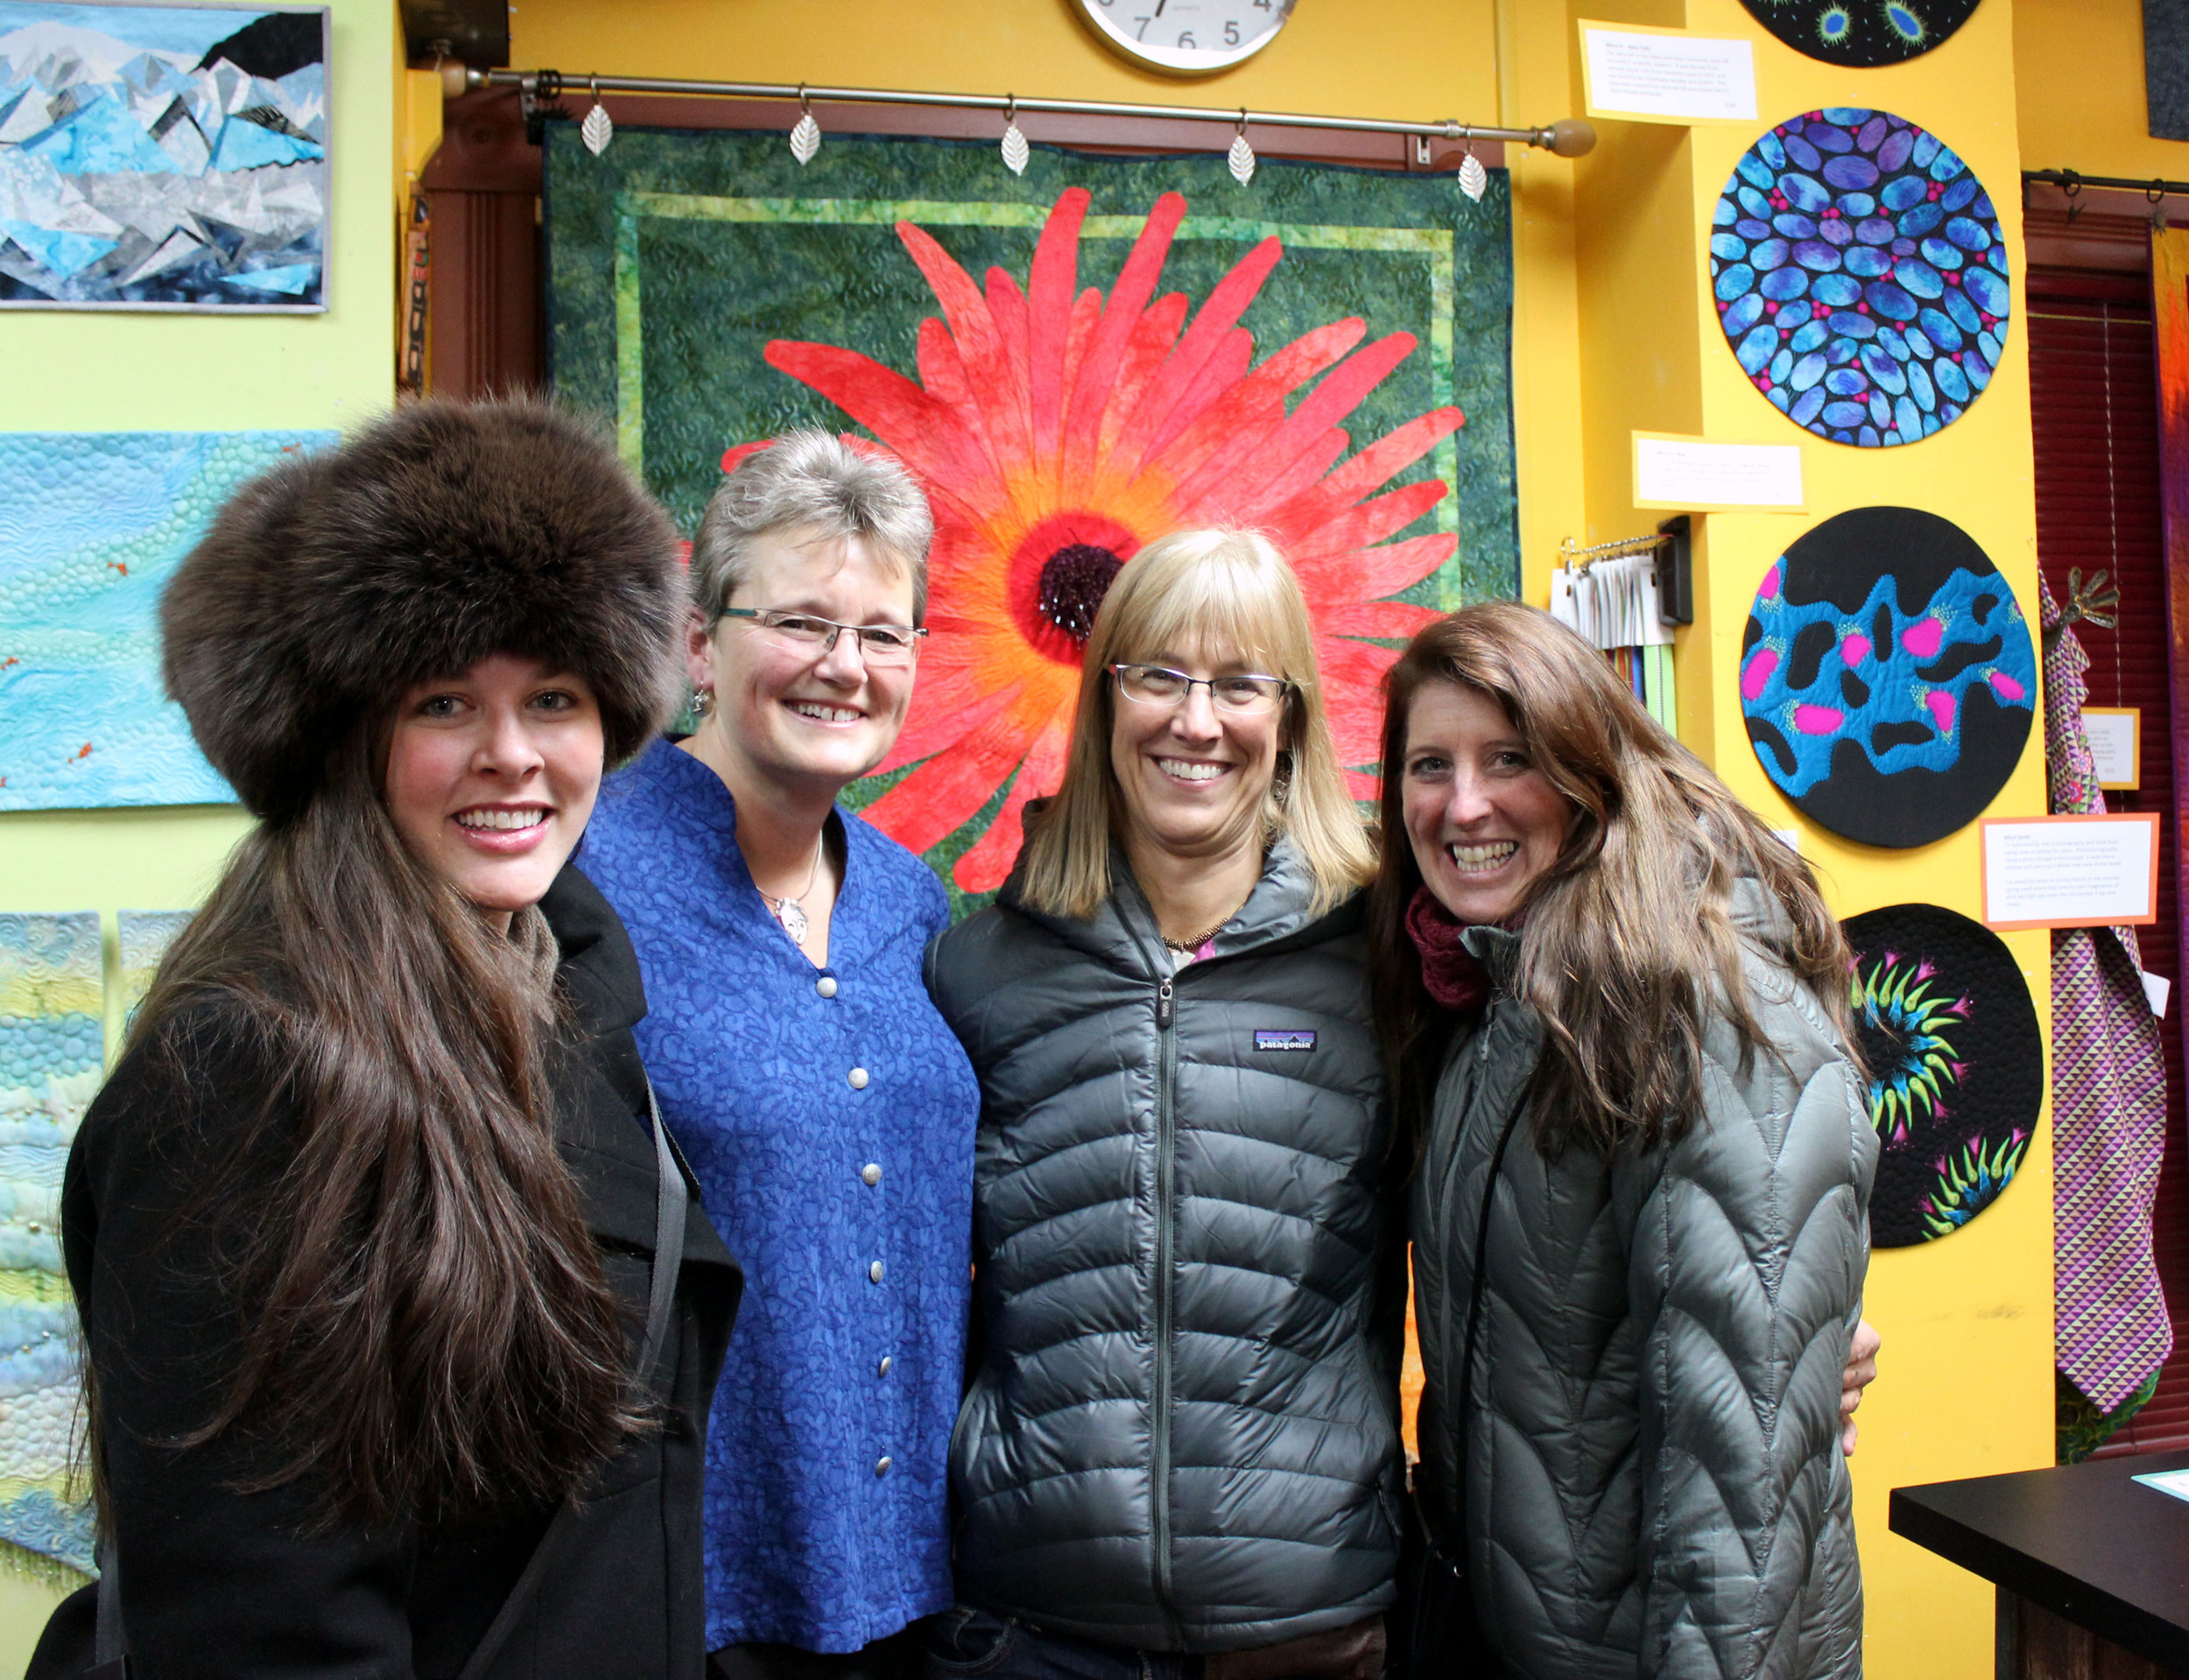 From left: myself, Fabienne, Michelle, and Debbie during Fabienne's art gallery debut.